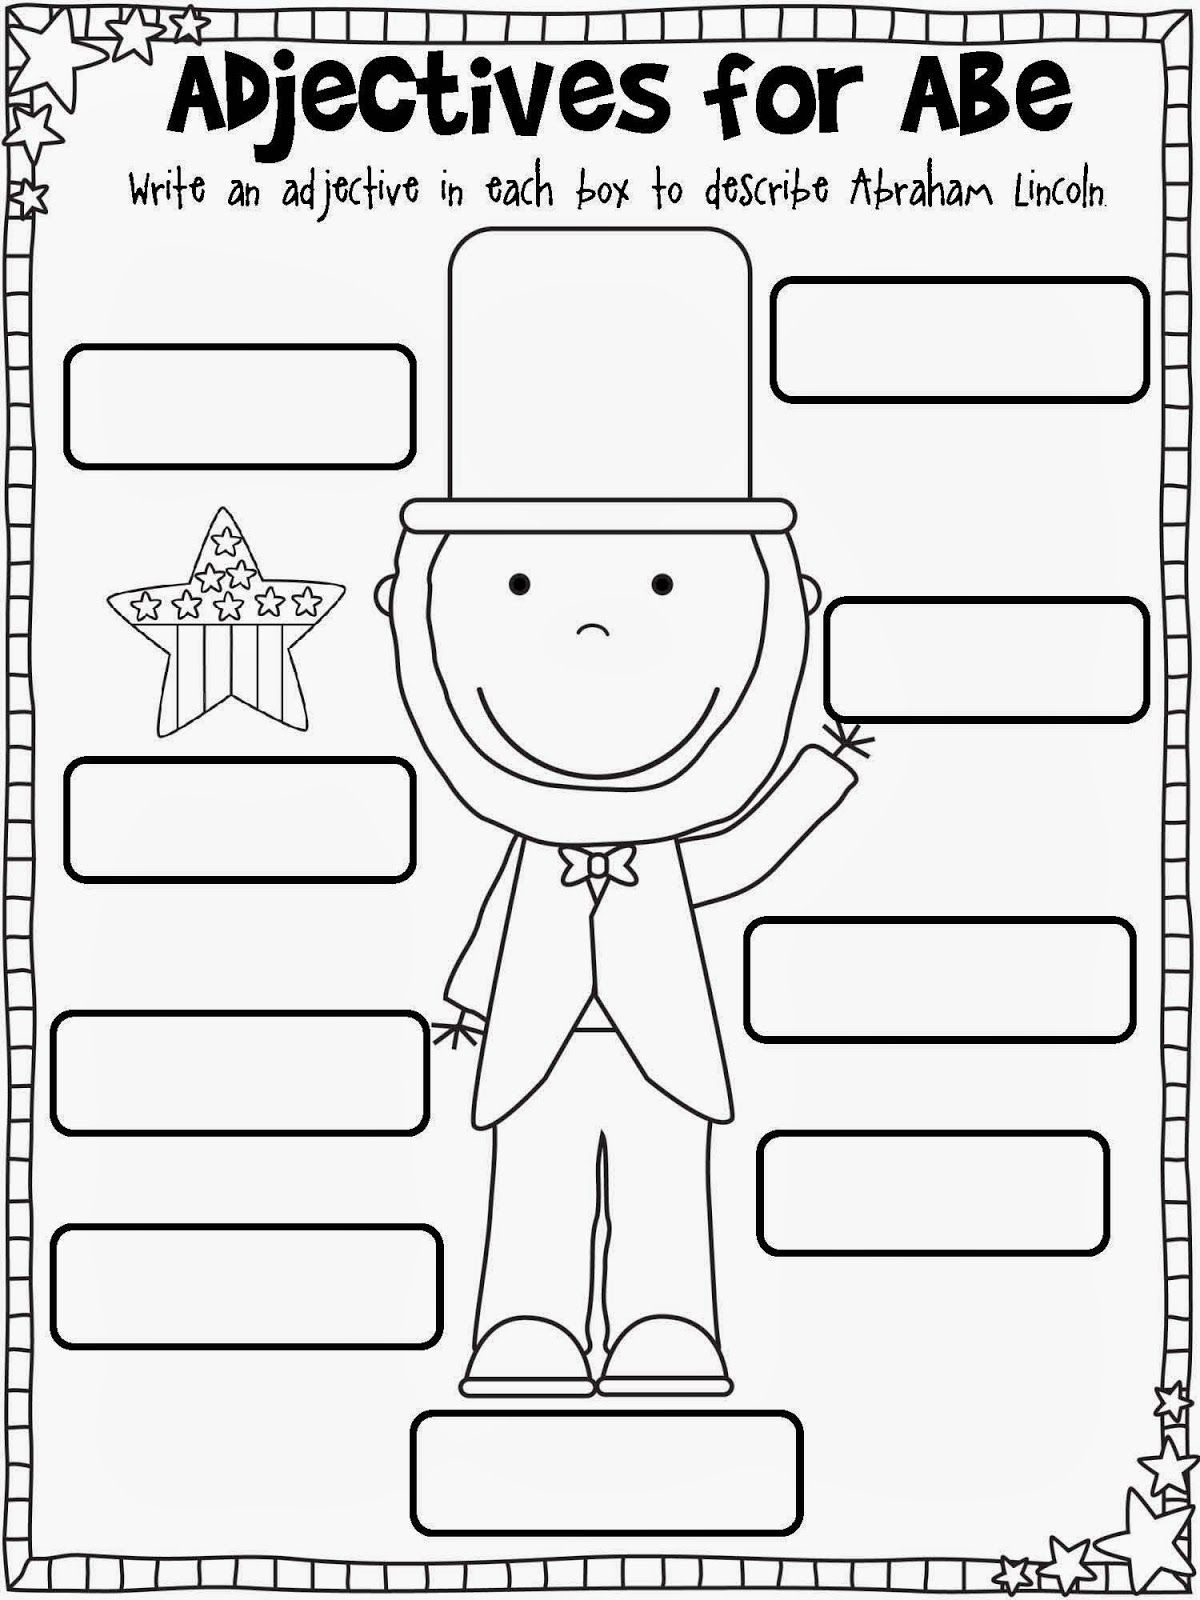 Worksheets Abraham Lincoln Worksheets Cheatslist Free